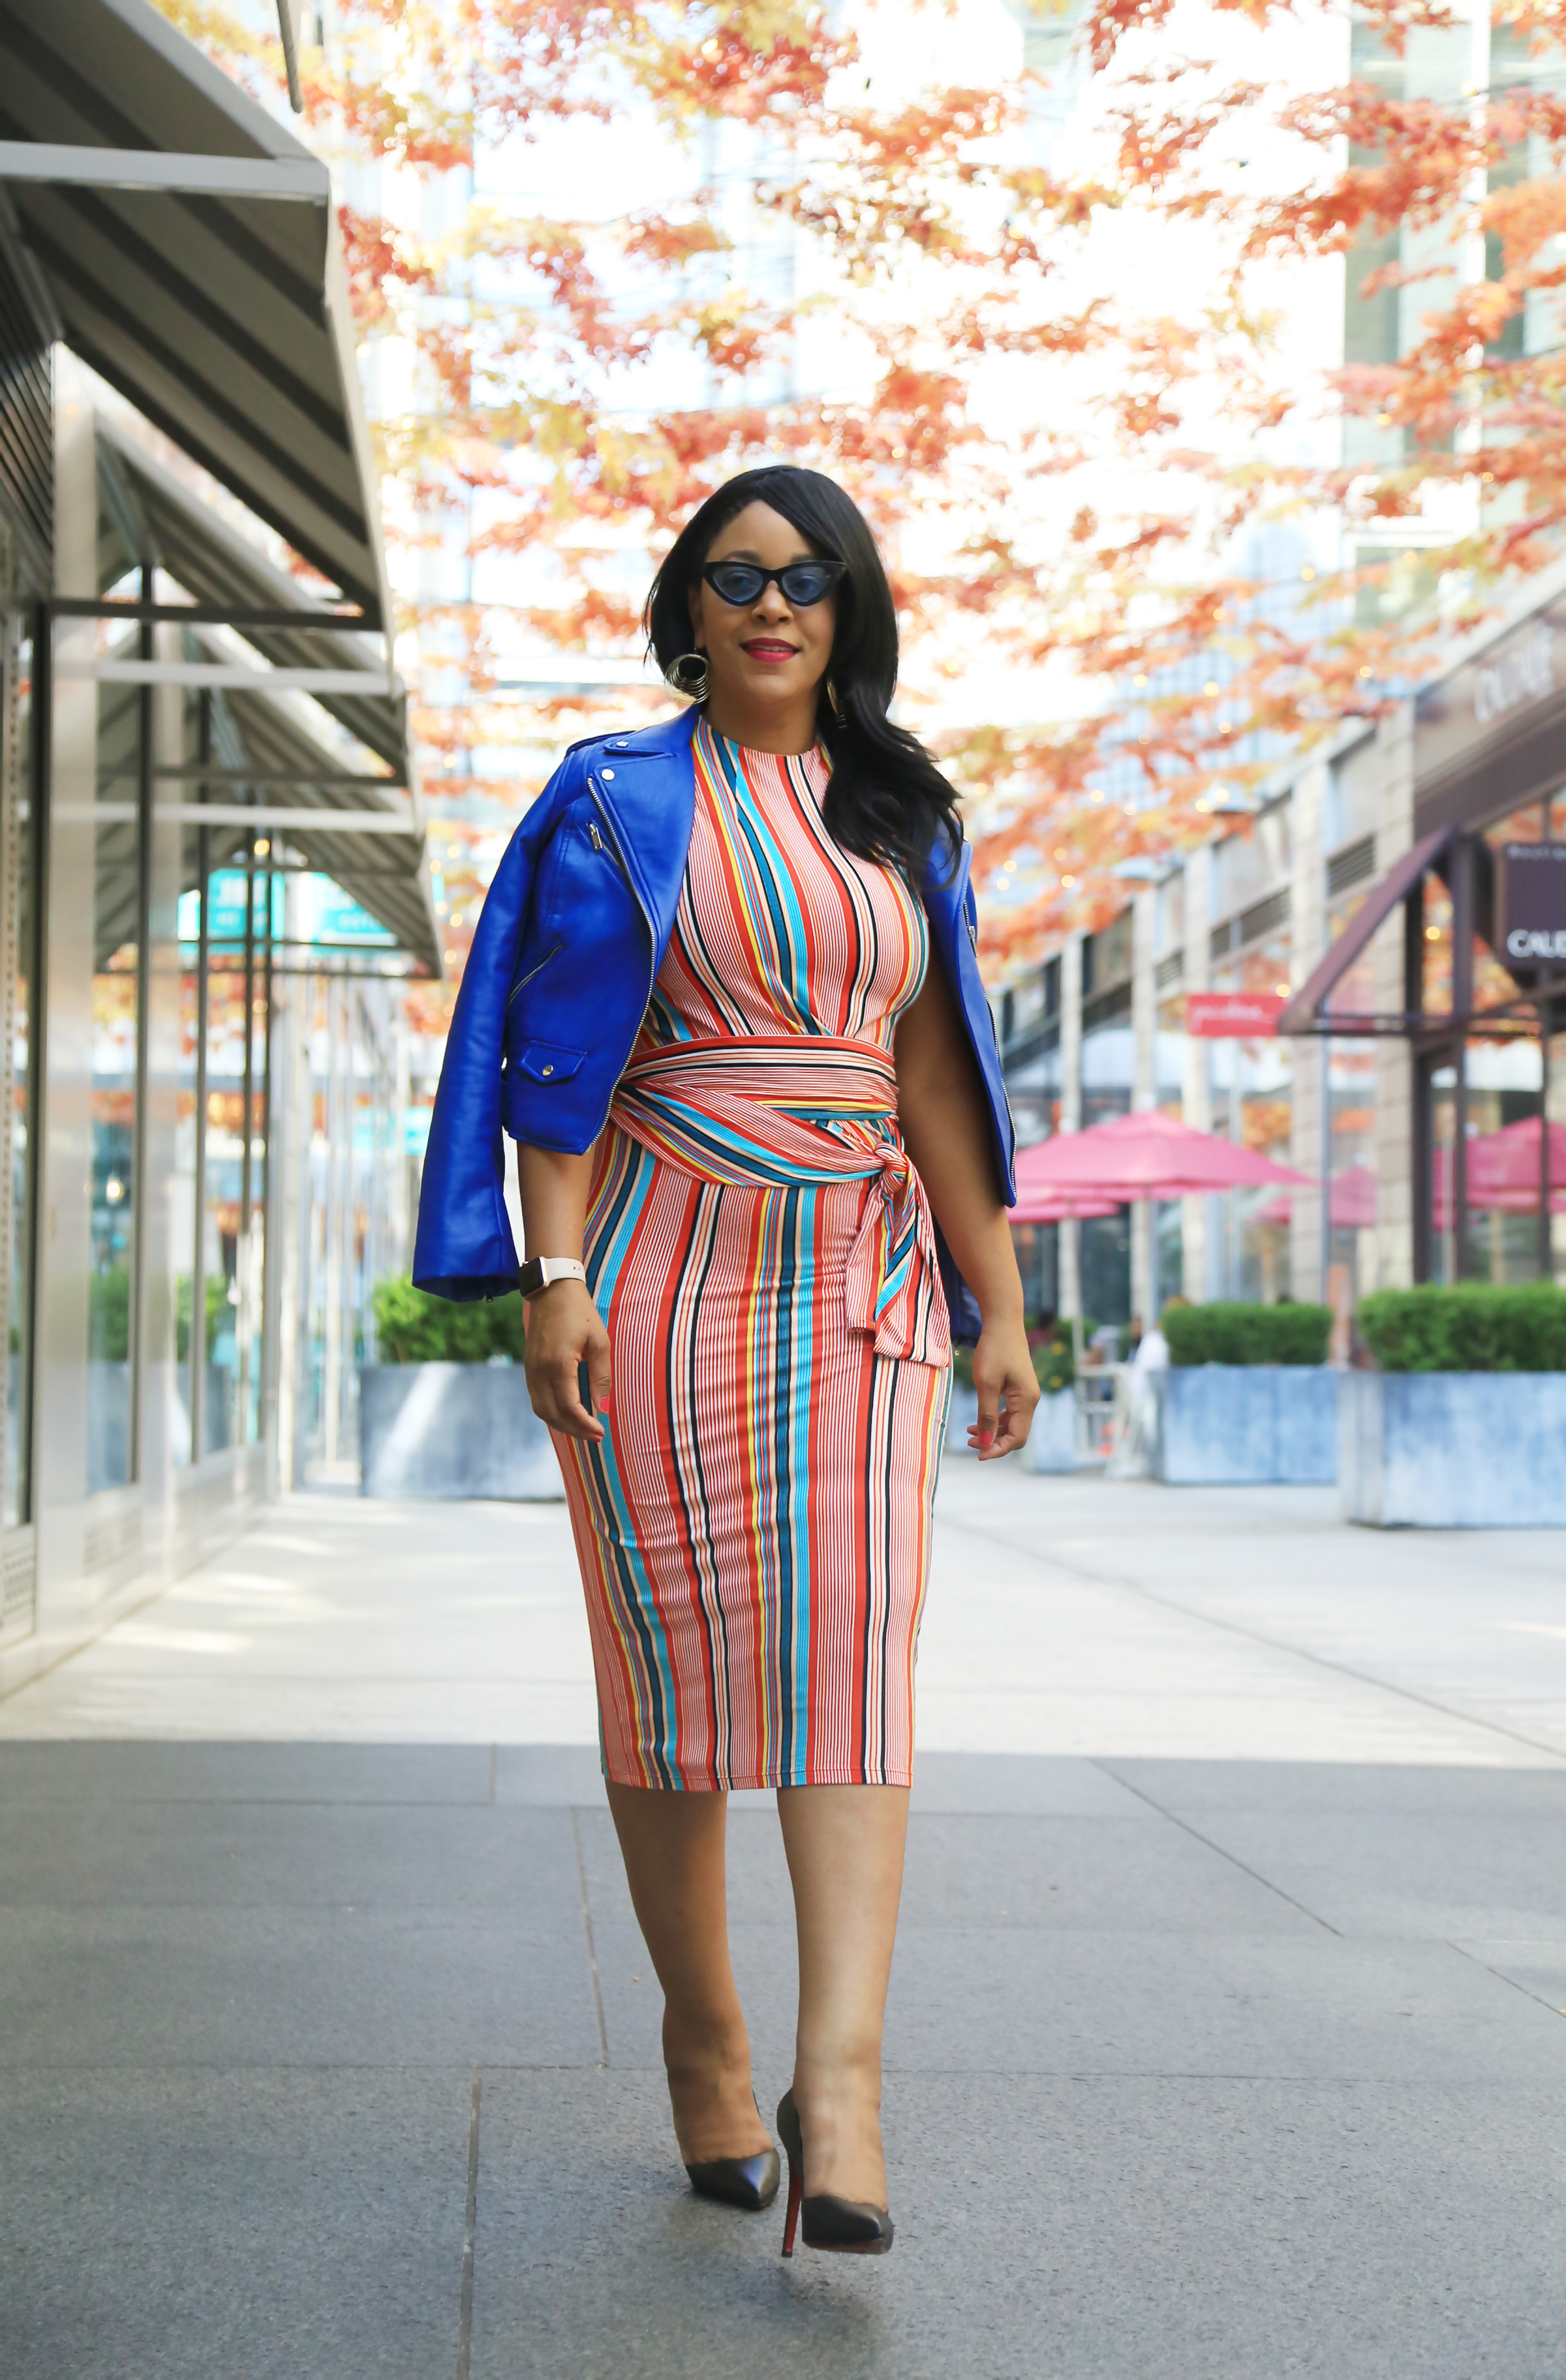 Goals Check In: Tackle Your Remaining 2019 Goals with These 3 Tips! Outfit details: Alice + Olivia - Delora Sleeveless Tie Waist Stripe Dress, Zara blue faux leather moto jacket, Christian Louboutin Pigalle pumps